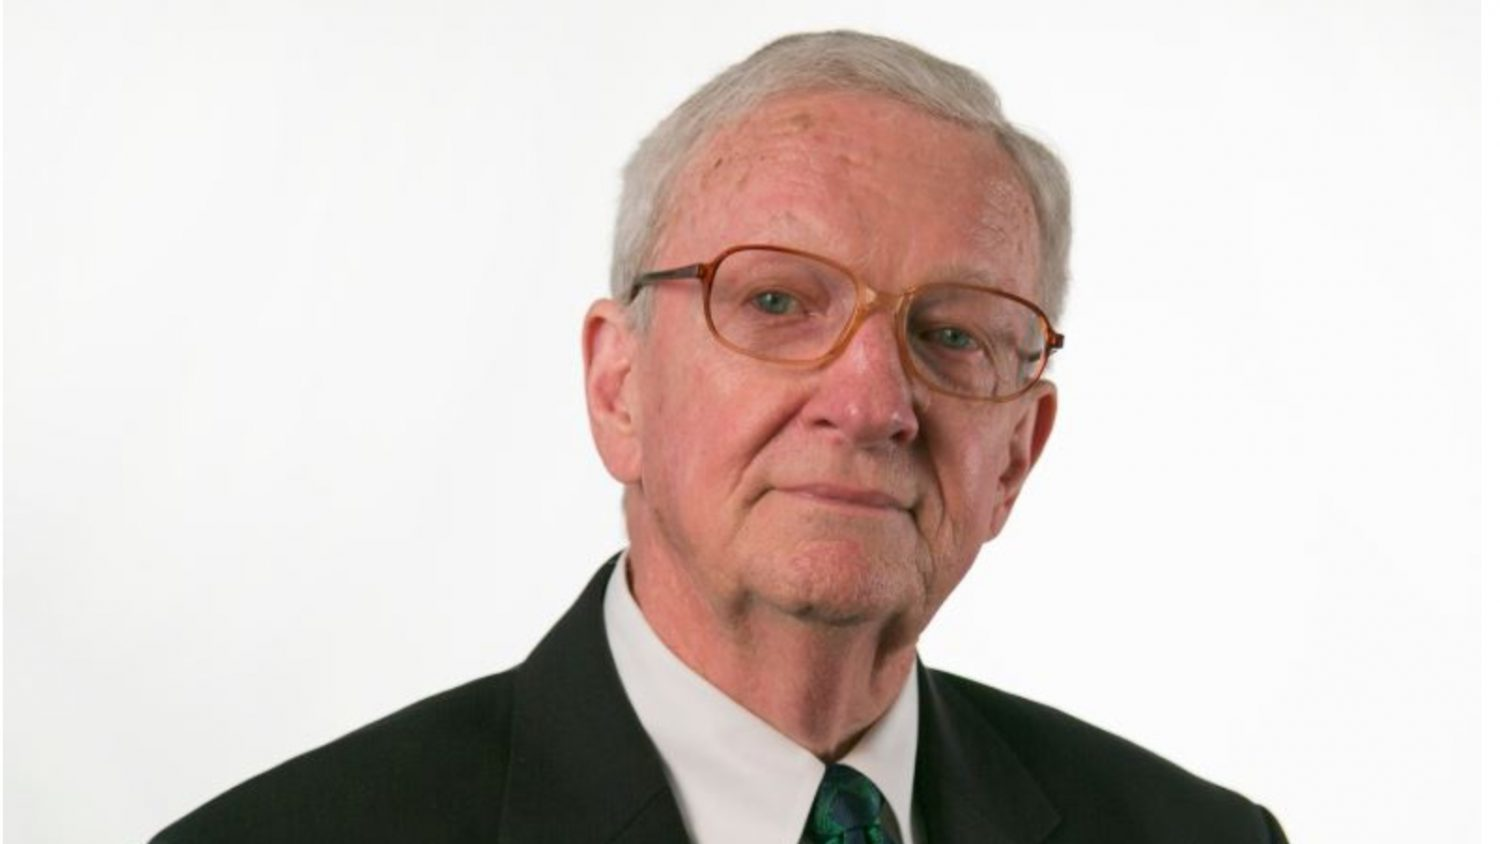 Head and shoulders shot of man against a white background